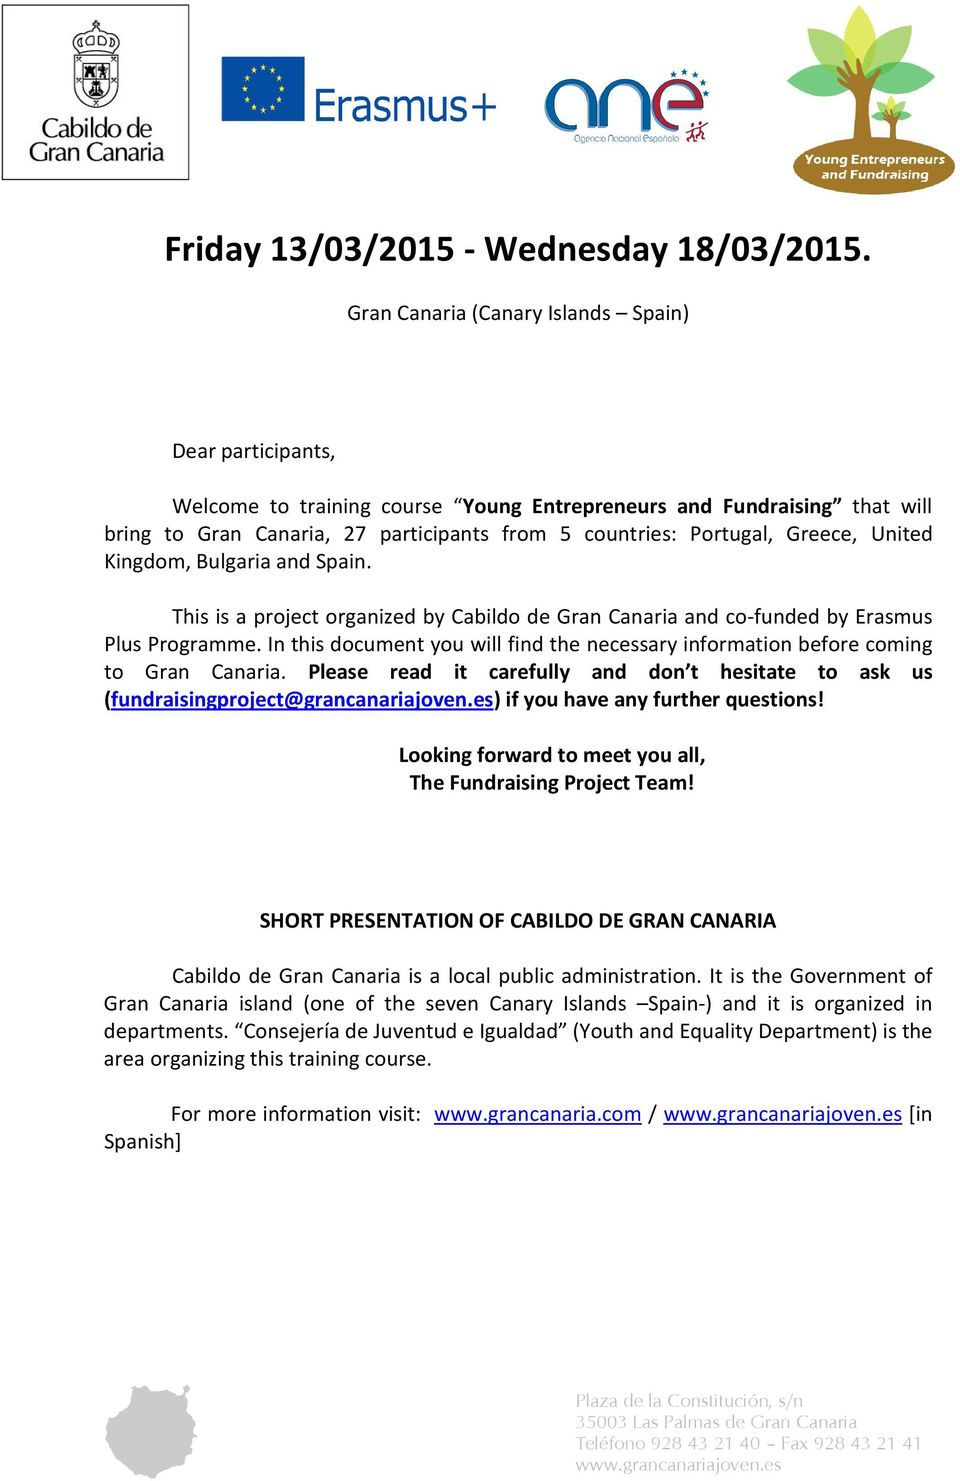 Greece, United Kingdom, Bulgaria and Spain. This is a project organized by Cabildo de Gran Canaria and co-funded by Erasmus Plus Programme.